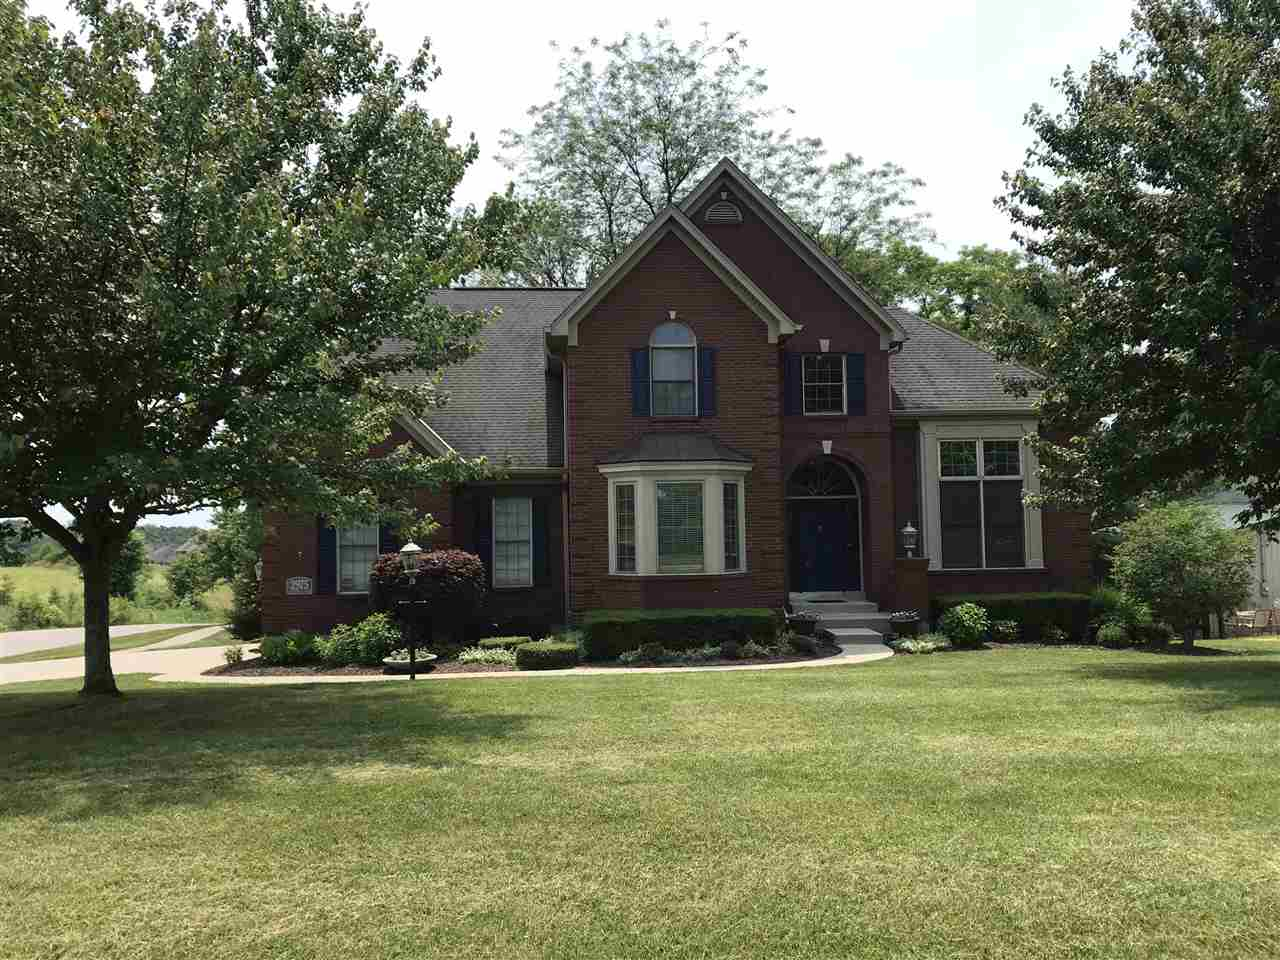 Photo 1 for 2975 Hathaway Rd Union, KY 41091